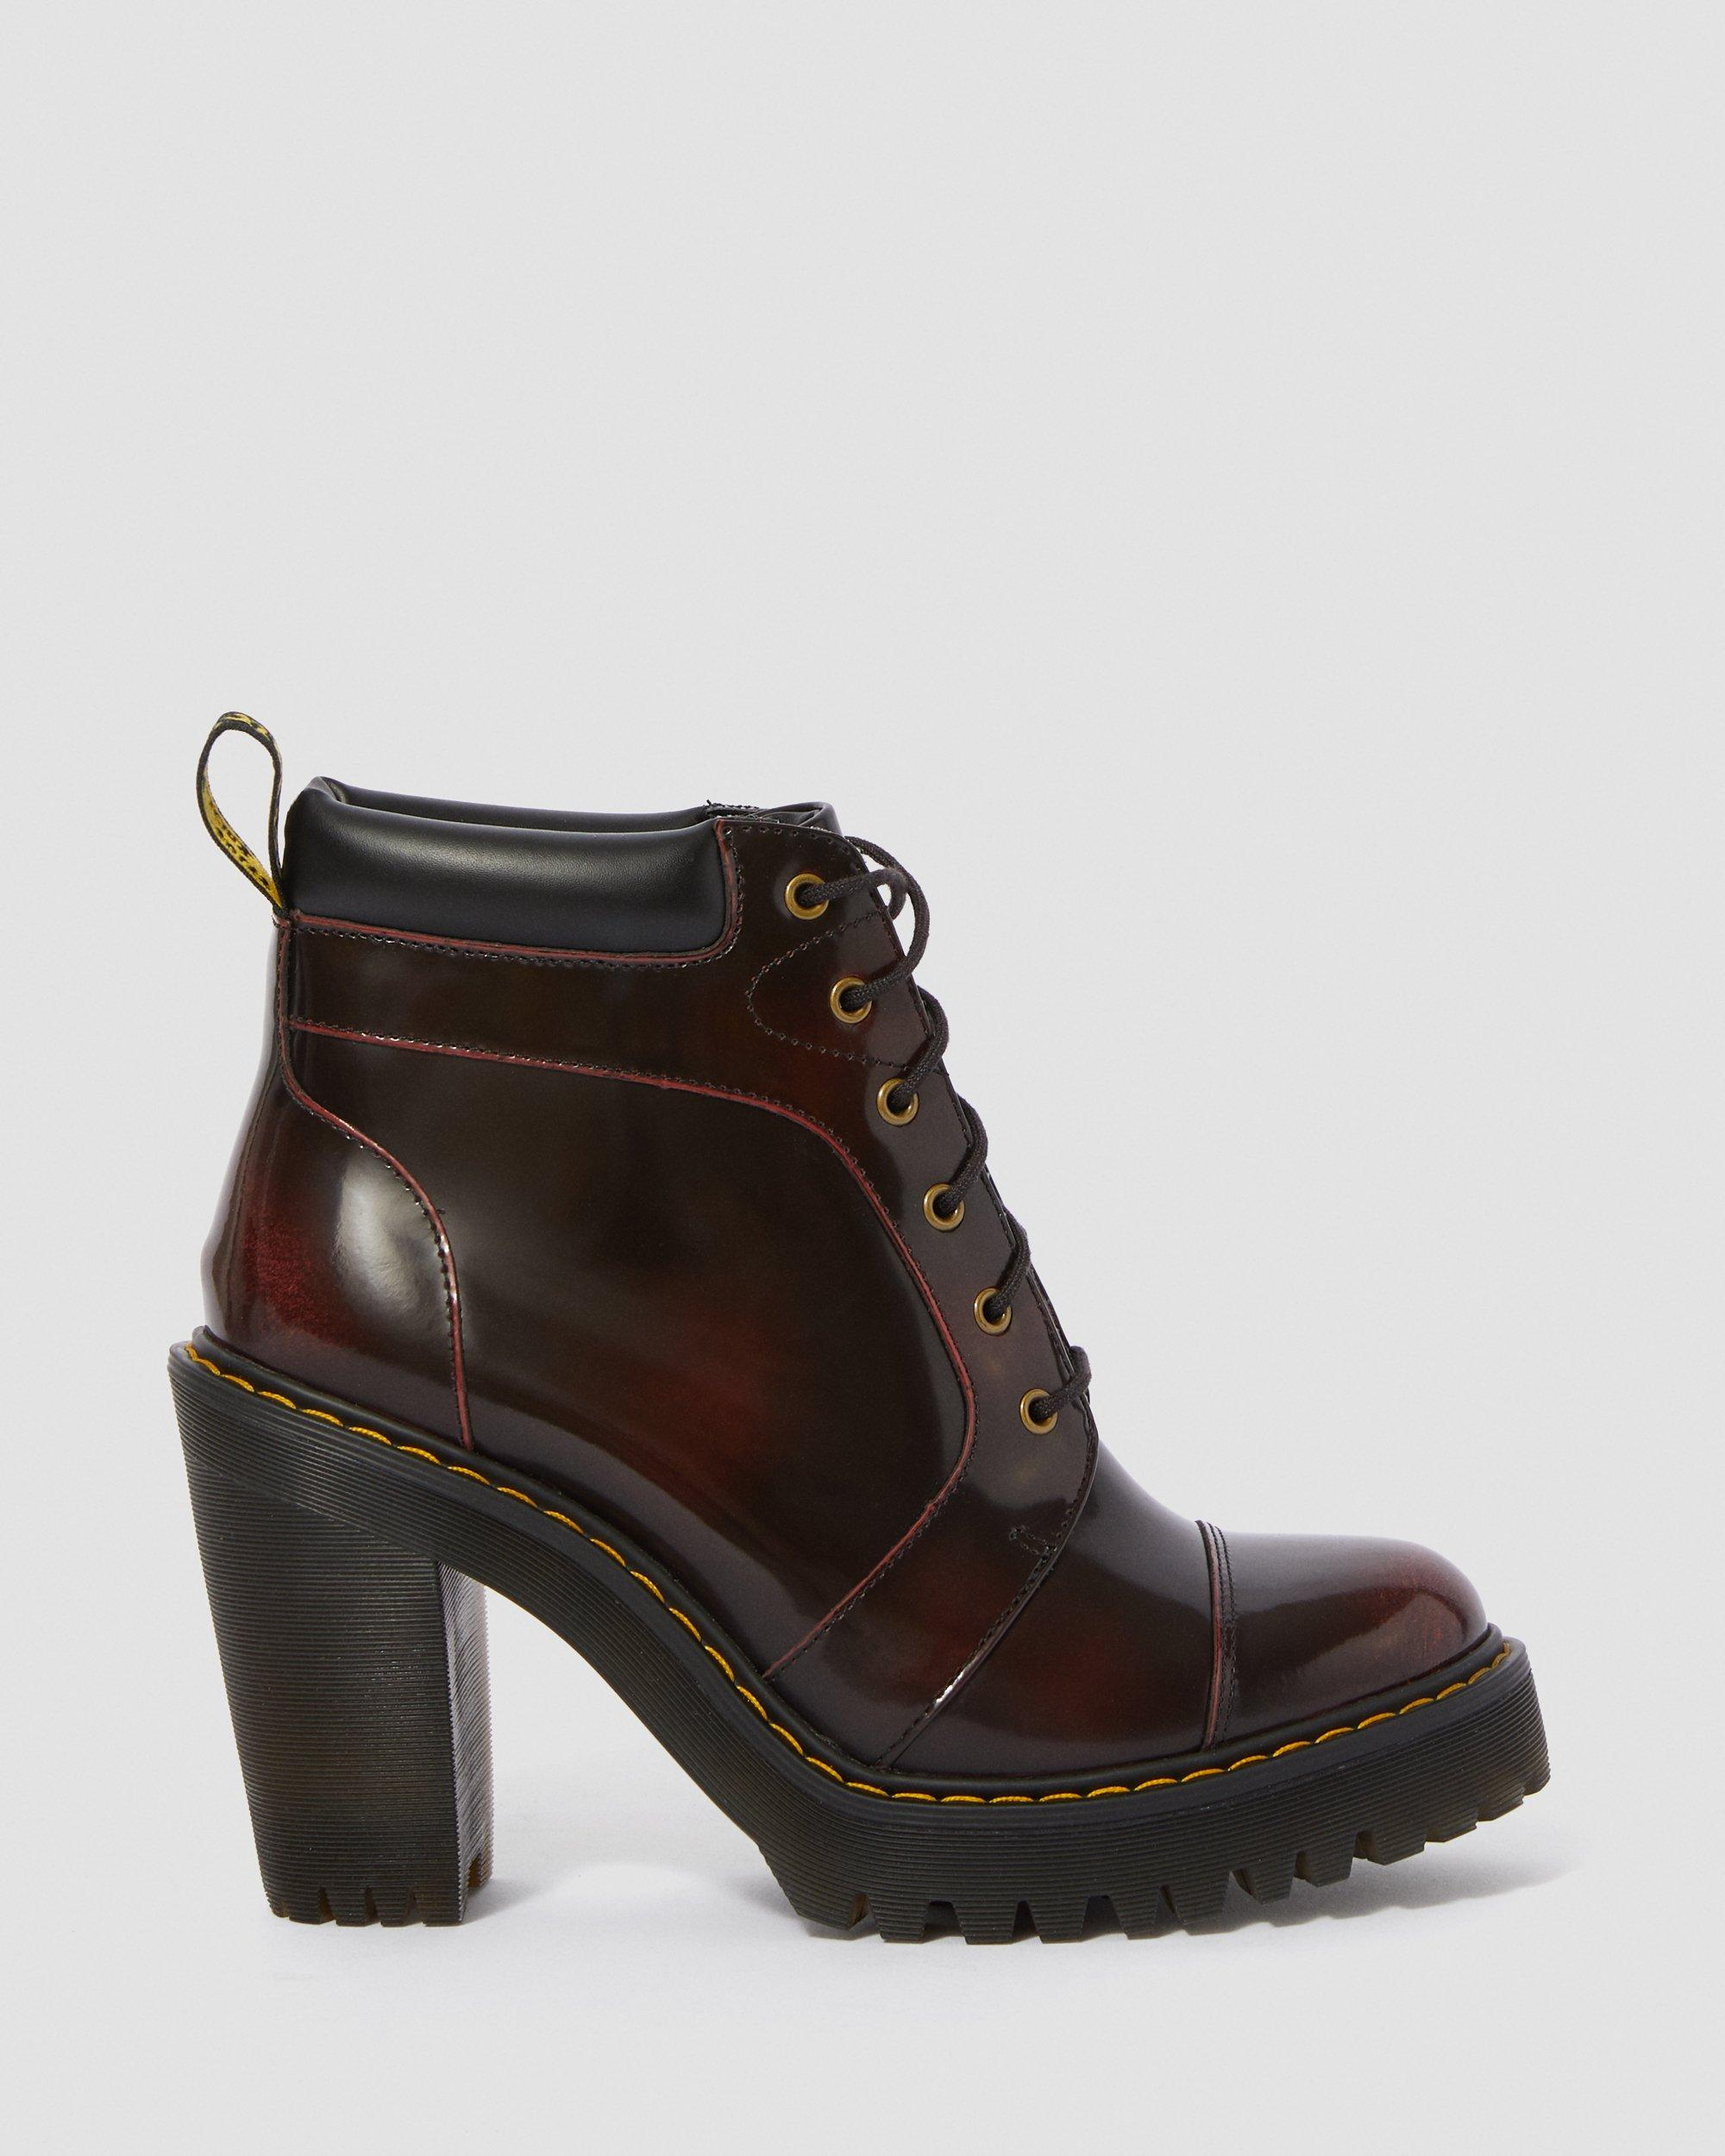 DR MARTENS AVERIL WOMEN'S ARCADIA LEATHER HEELED ANKLE BOOTS